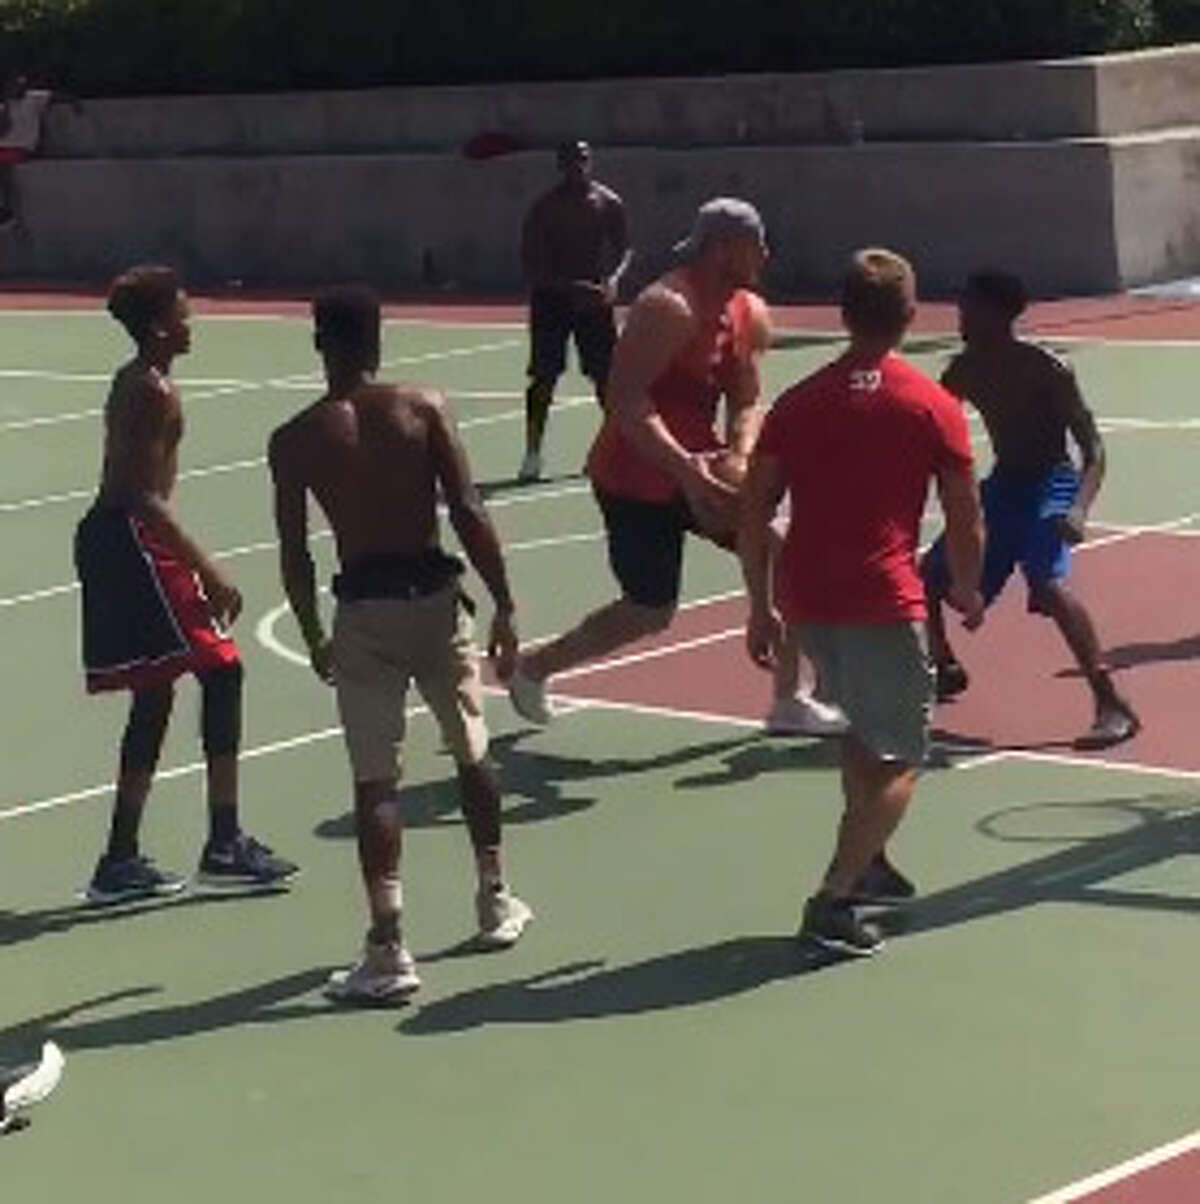 The Houston Texans' J.J. Watt showed up for some pickup basketball around town Saturday.